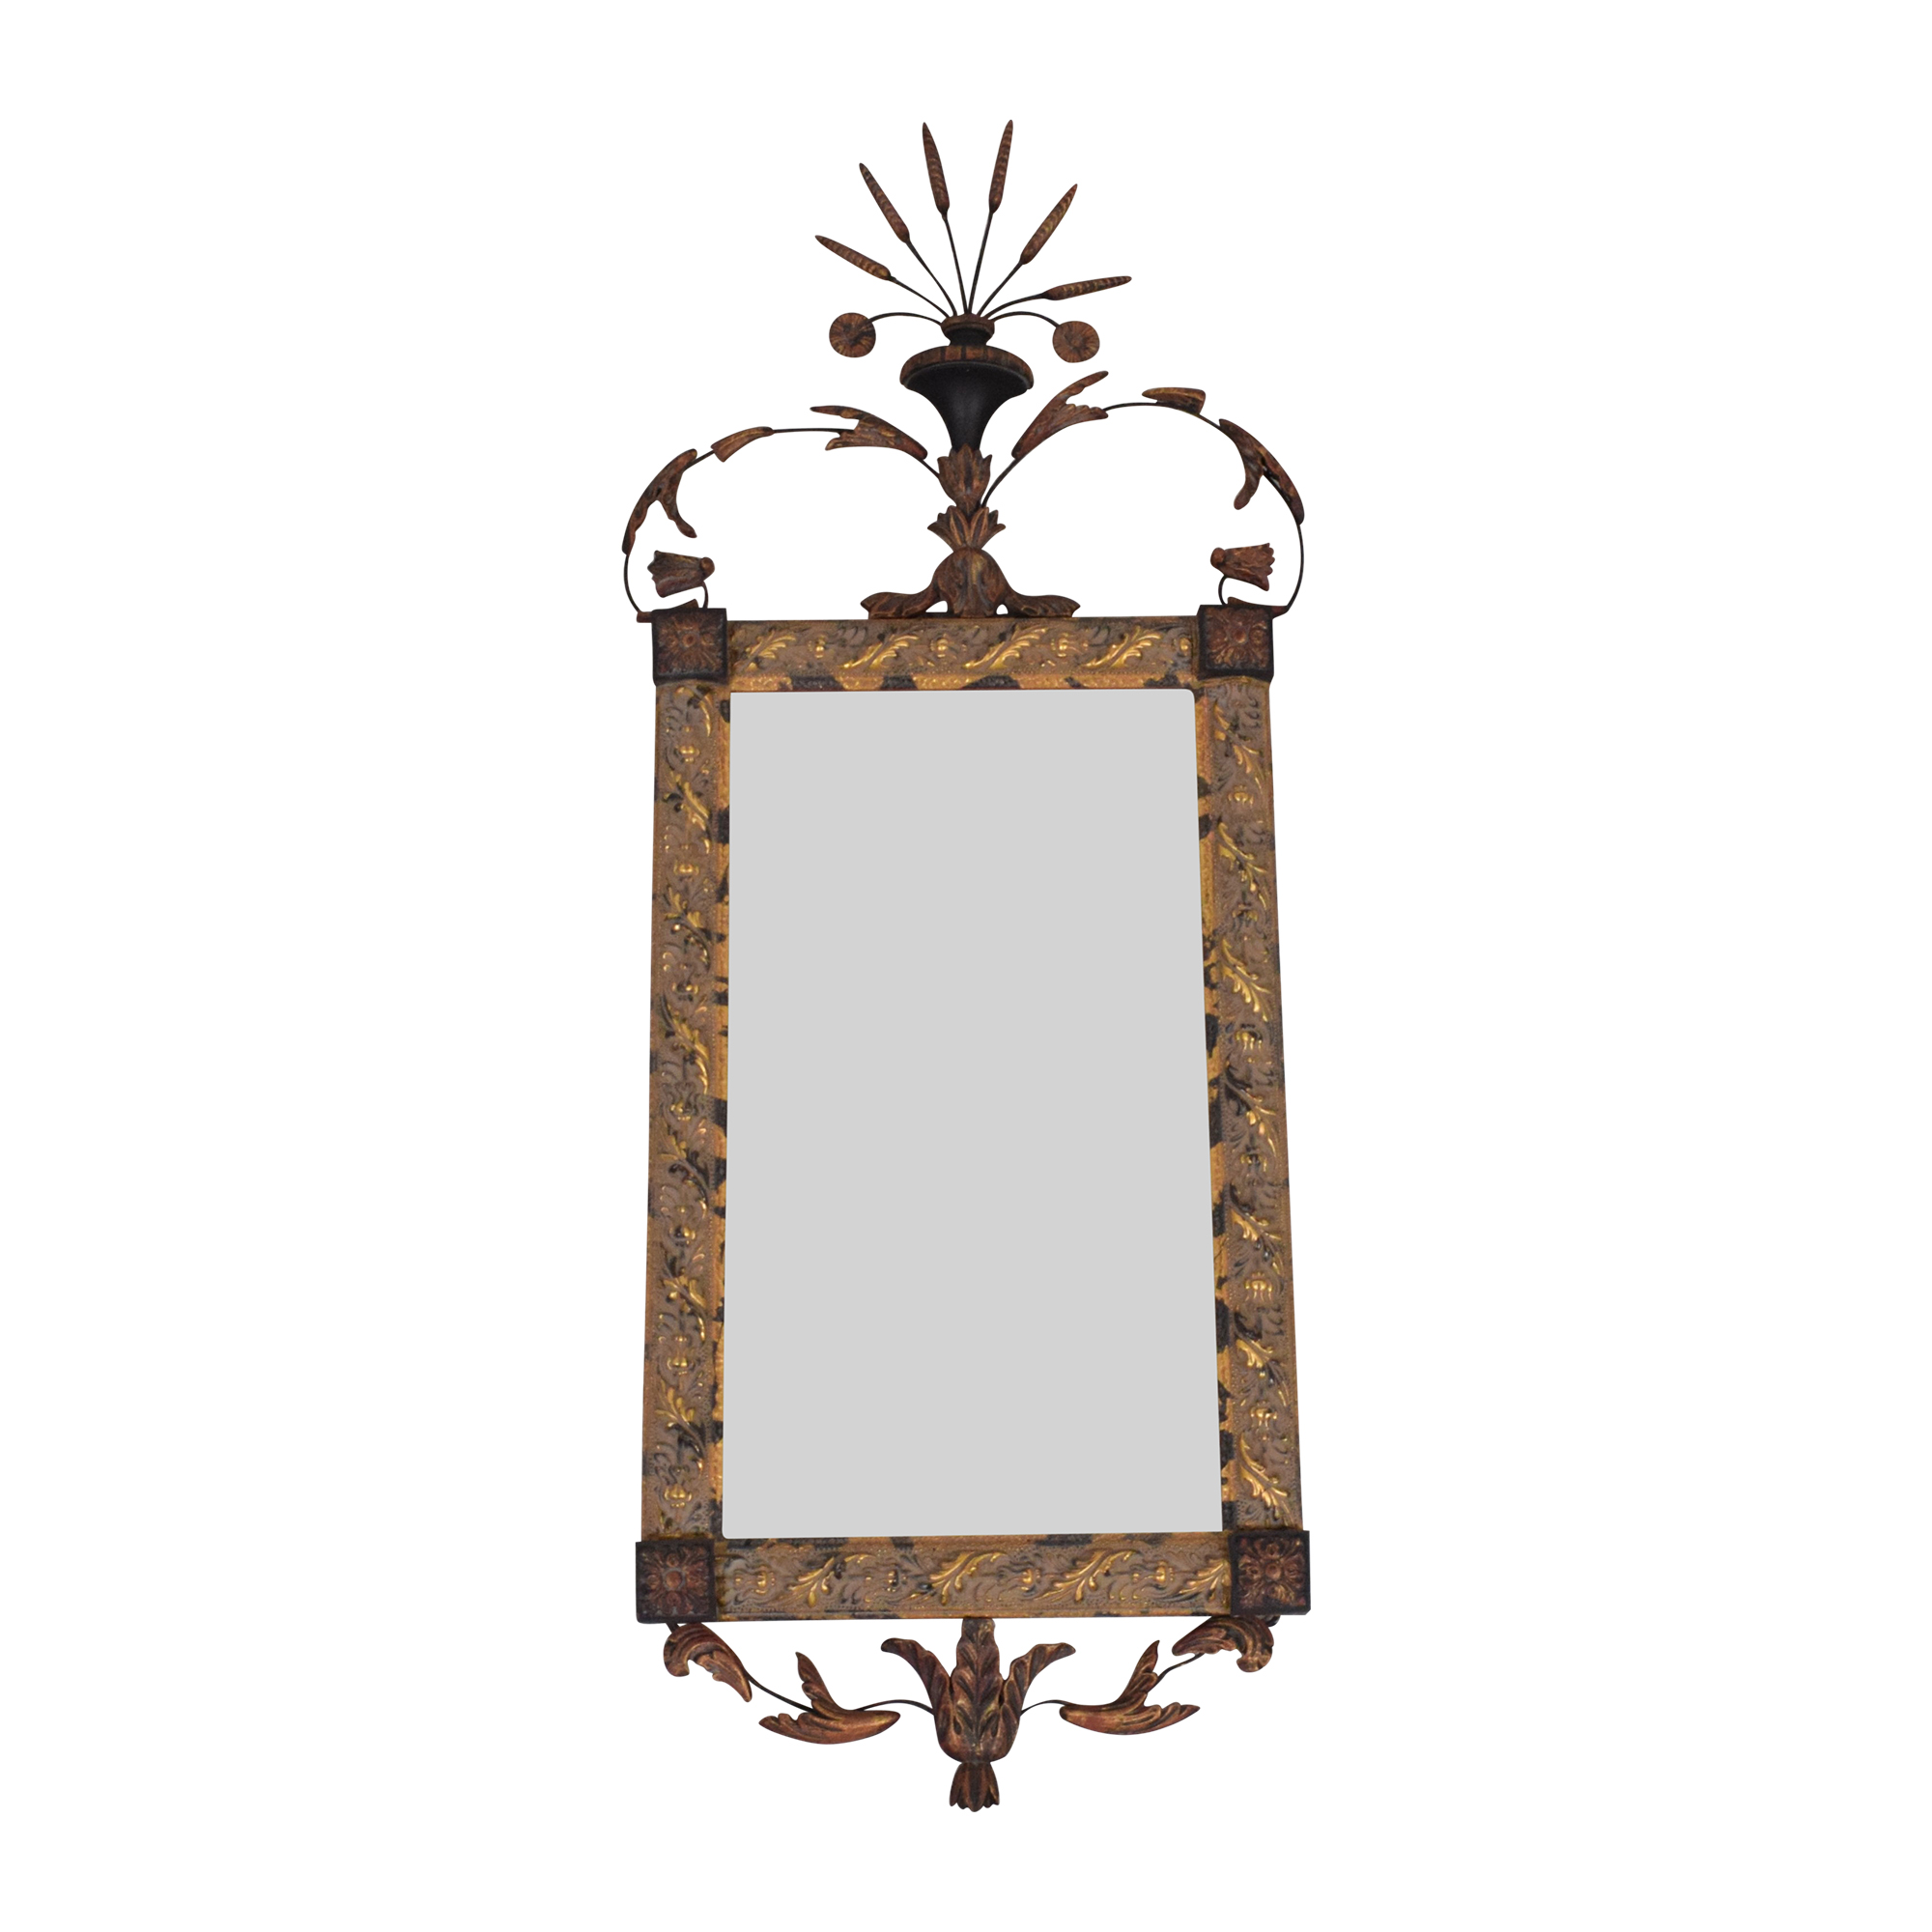 John-Richard John-Richard Decorative Wall Mirror brown and gold